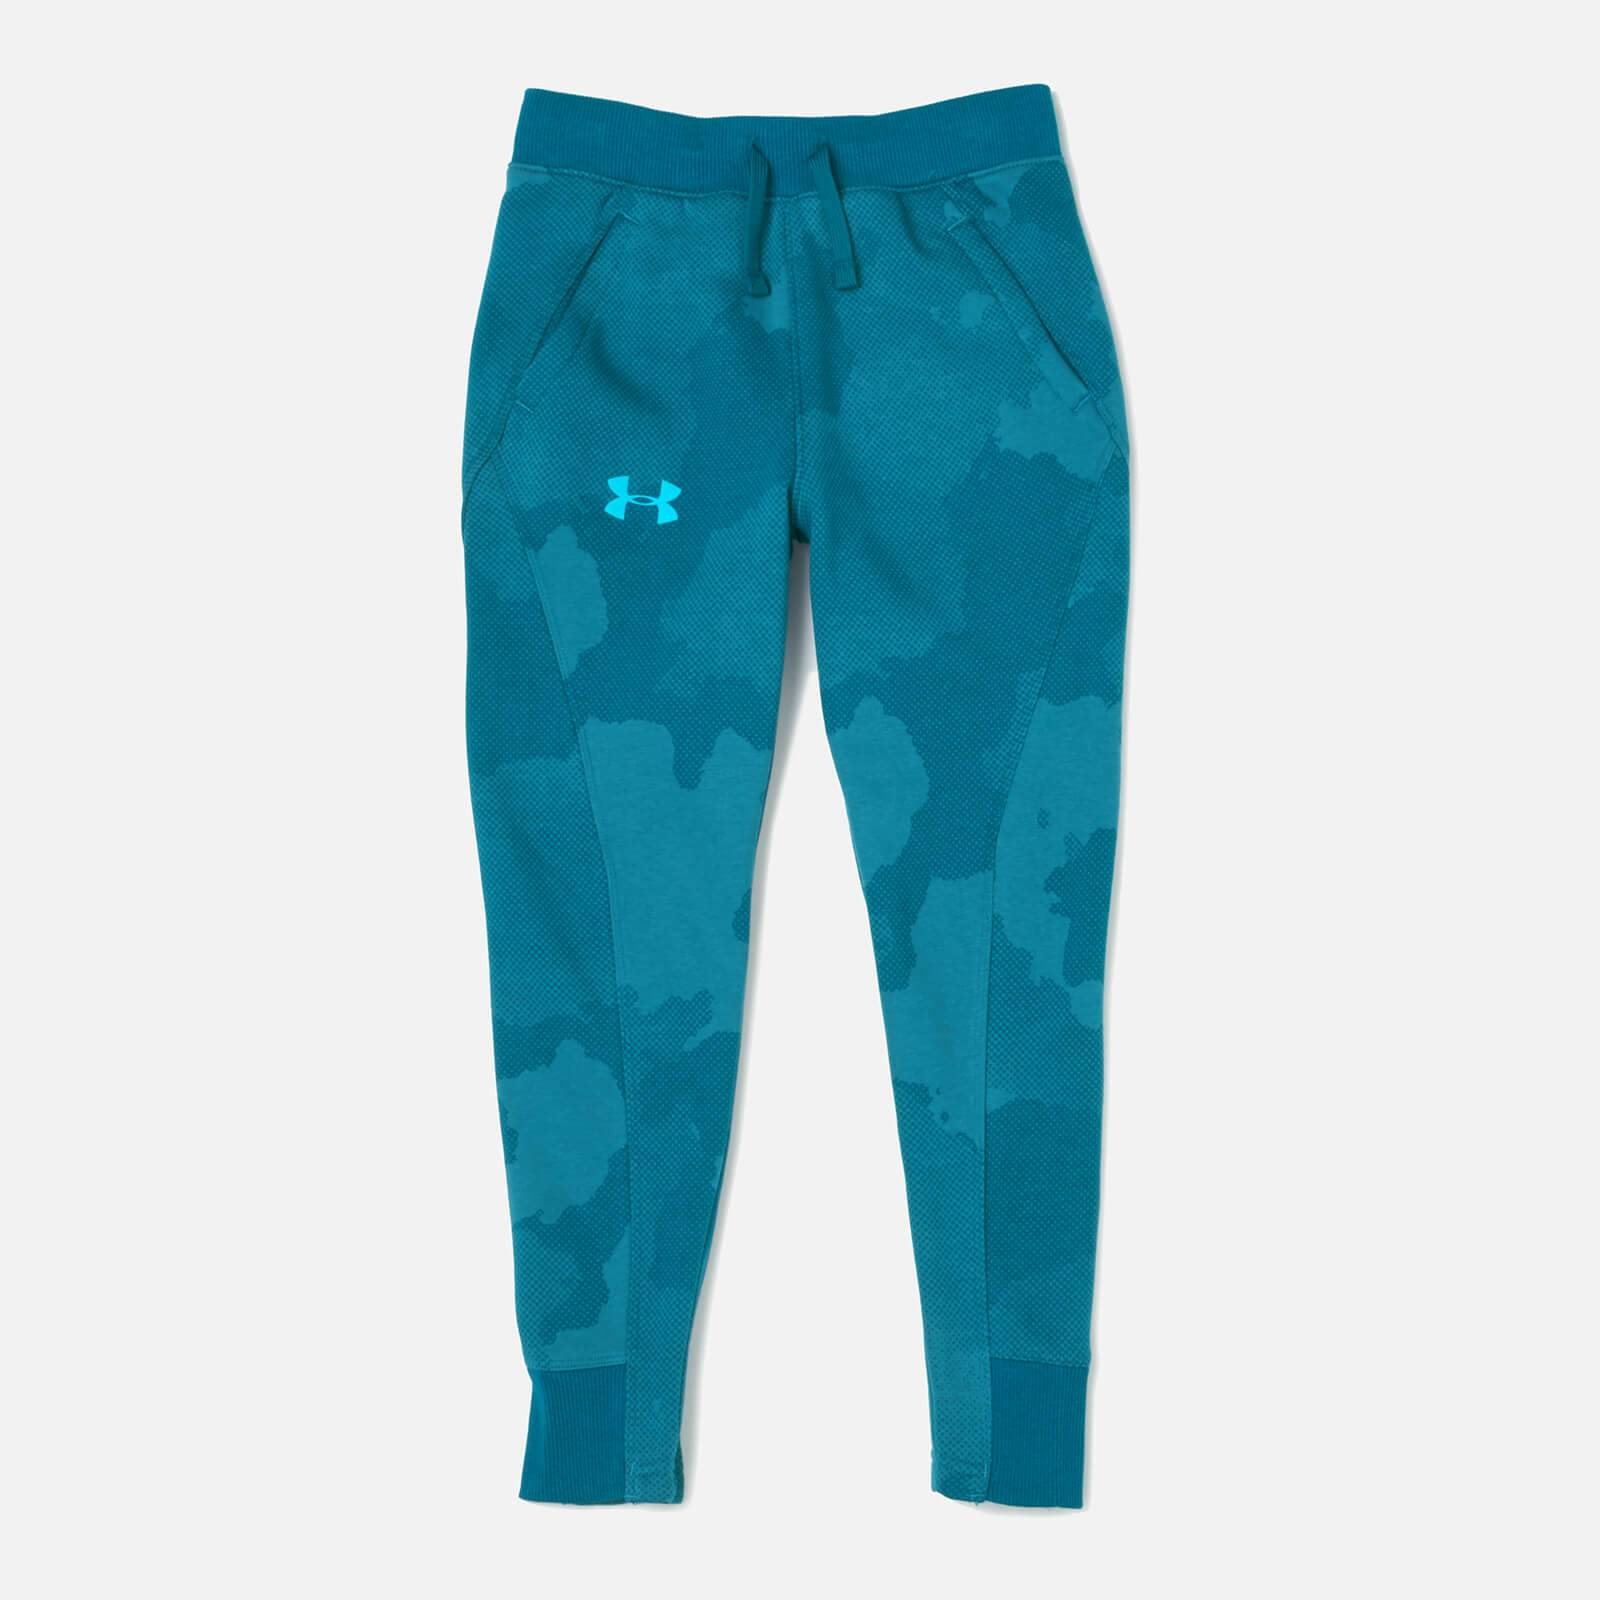 Under Armour Boys' Rival Printed Joggers - Techno Teal - S - Blue